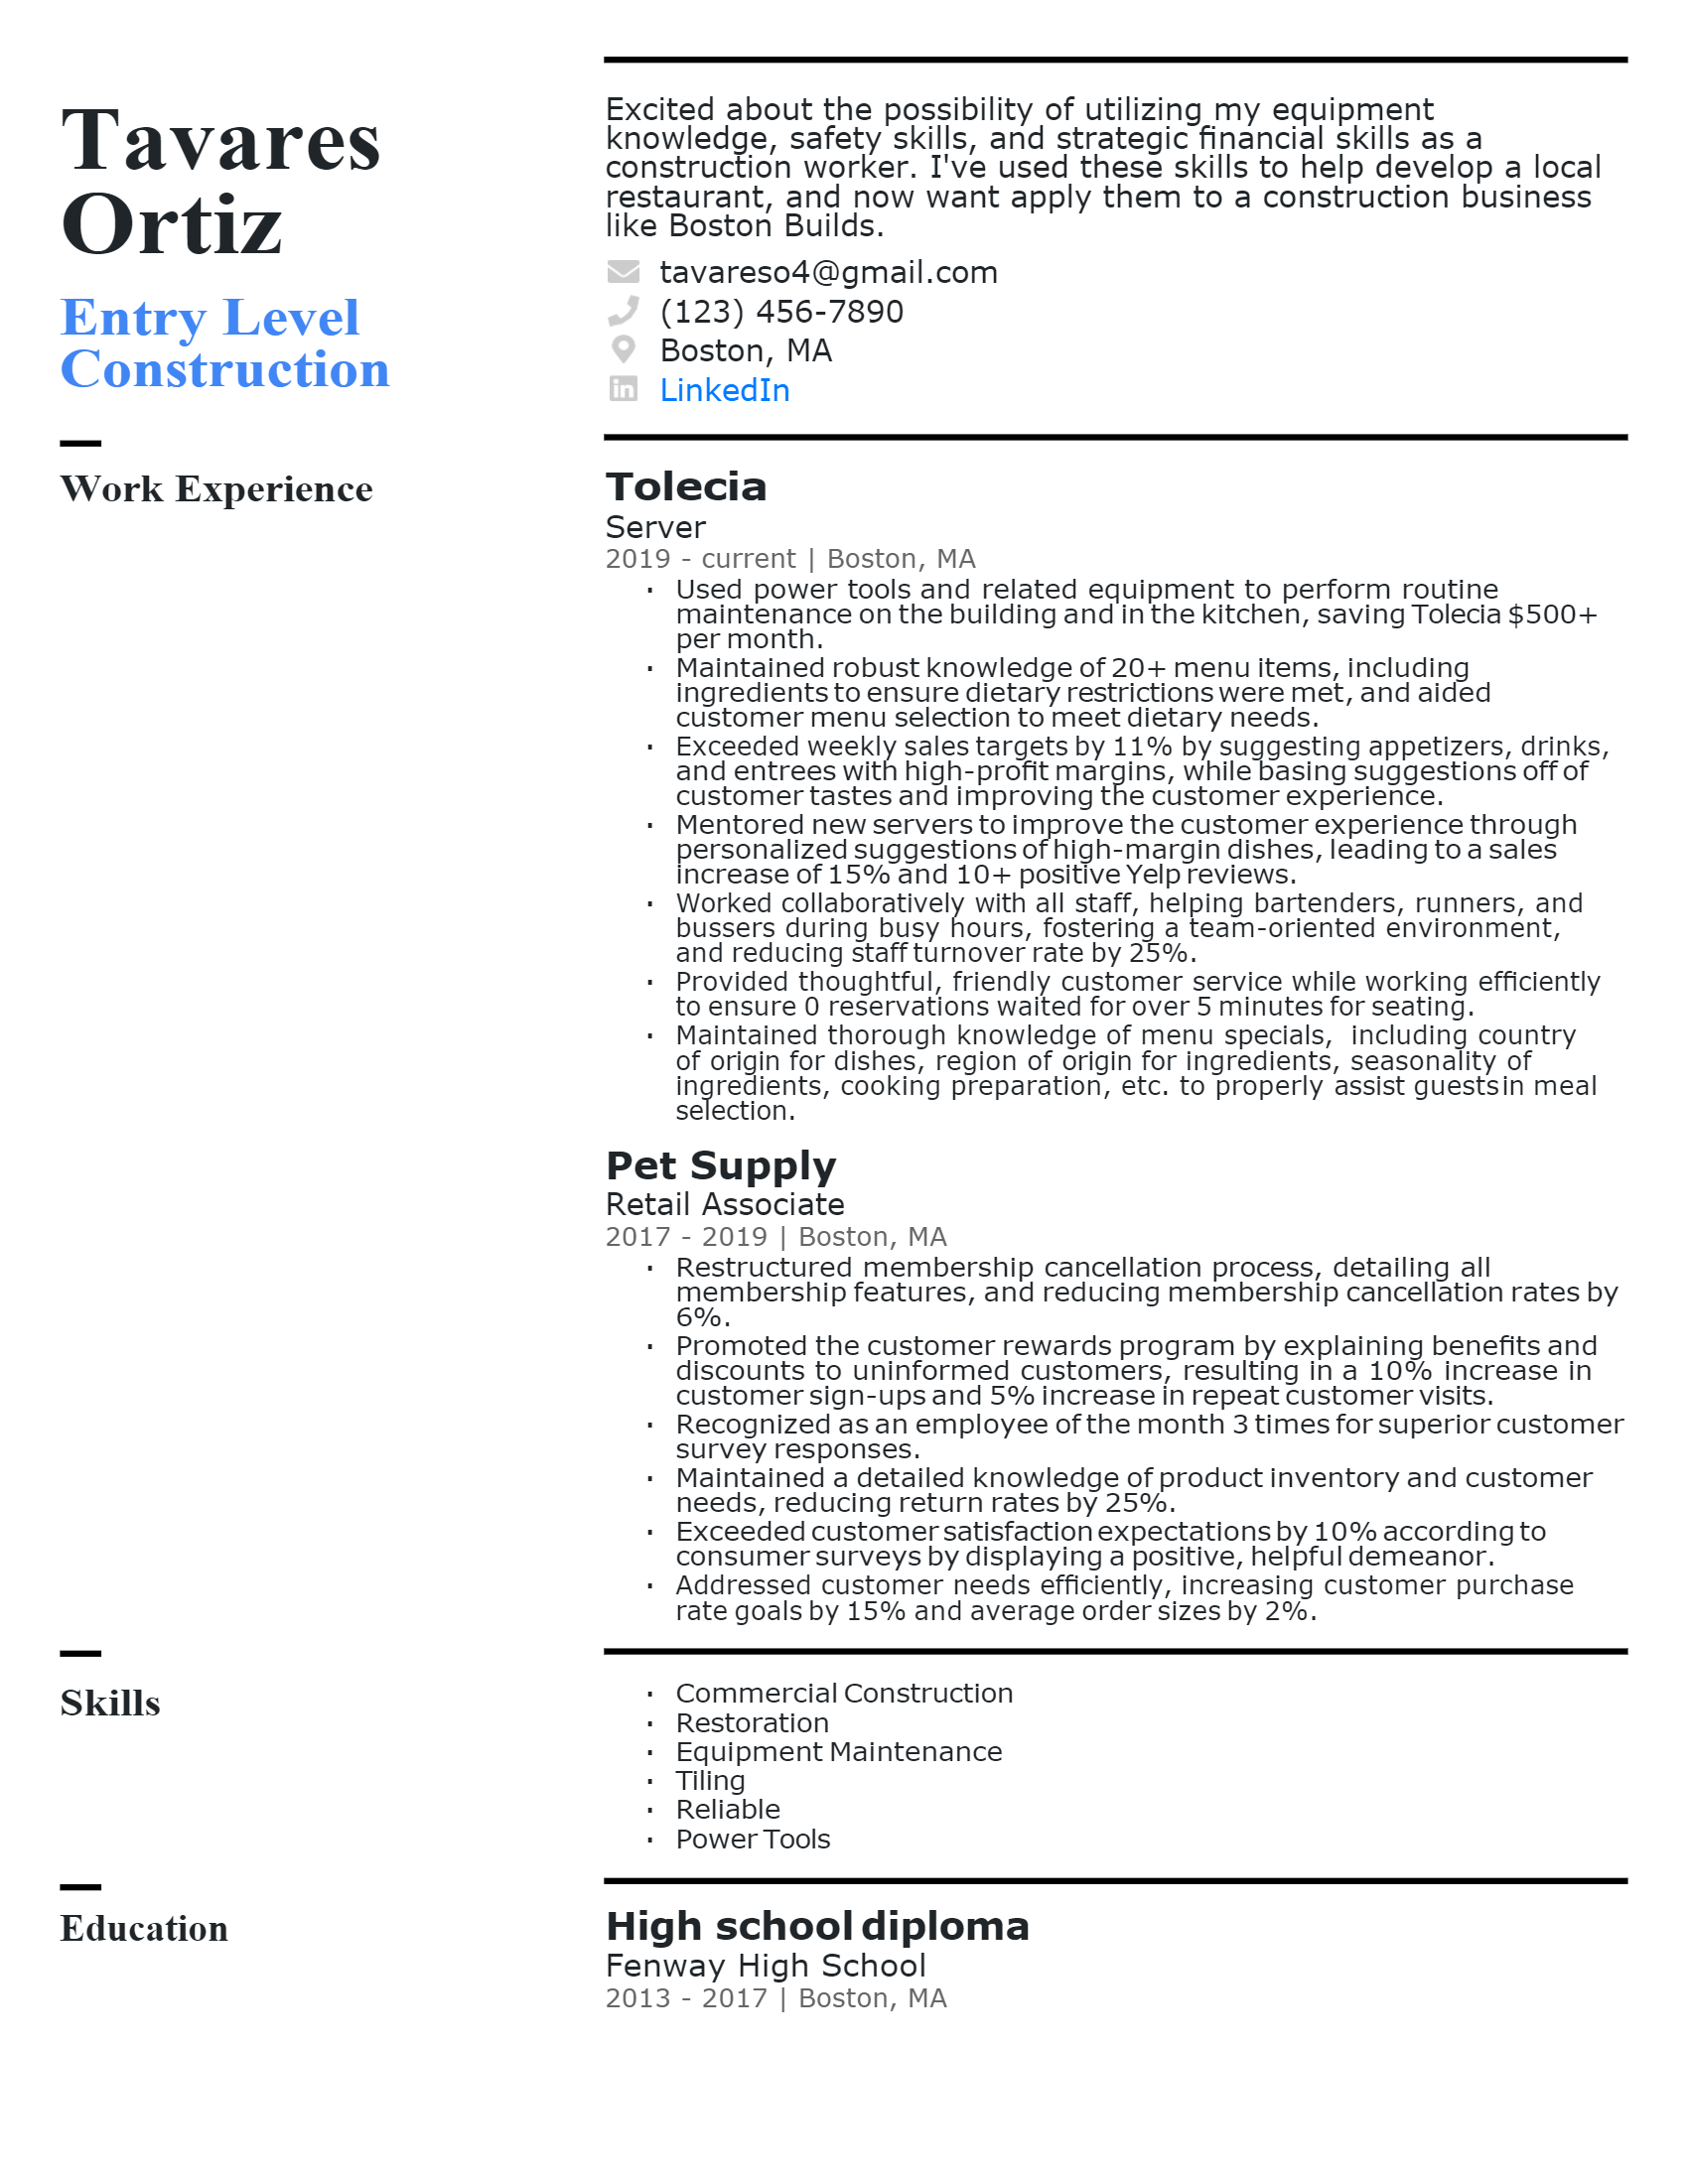 Entry level Construction Worker Resume